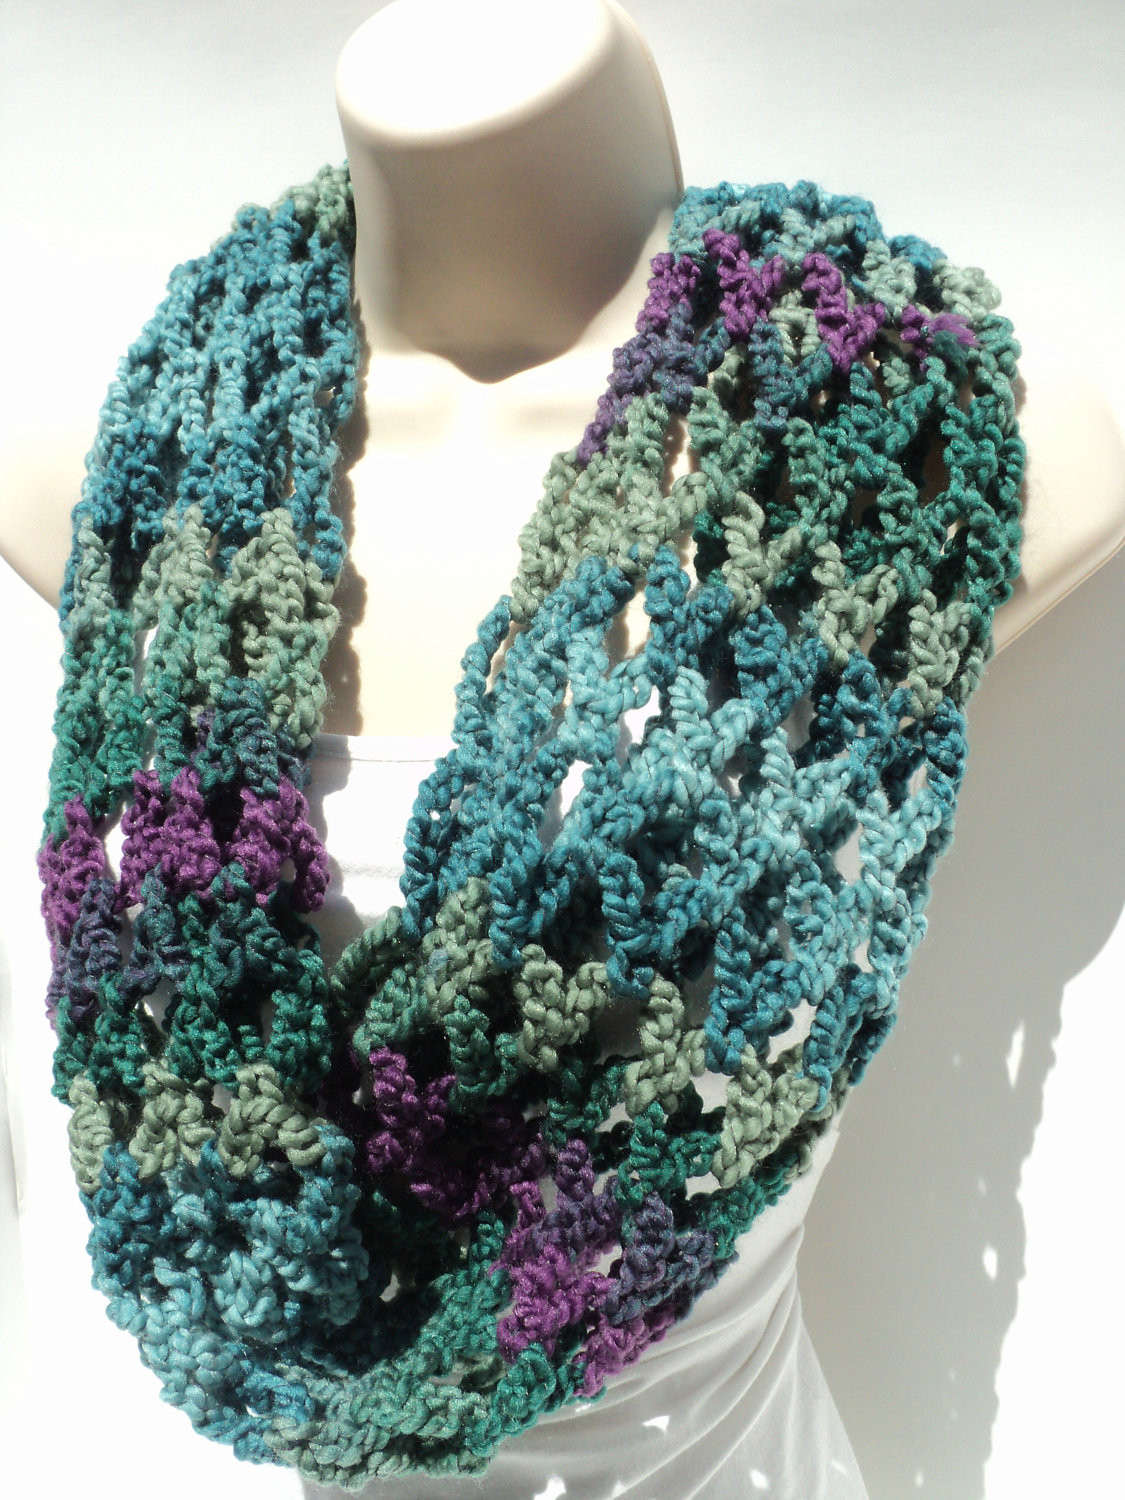 Crochet Infinity Scarf New Infinity Scarf Crochet Pattern for Beginners Crochet and Of Fresh 46 Pics Crochet Infinity Scarf